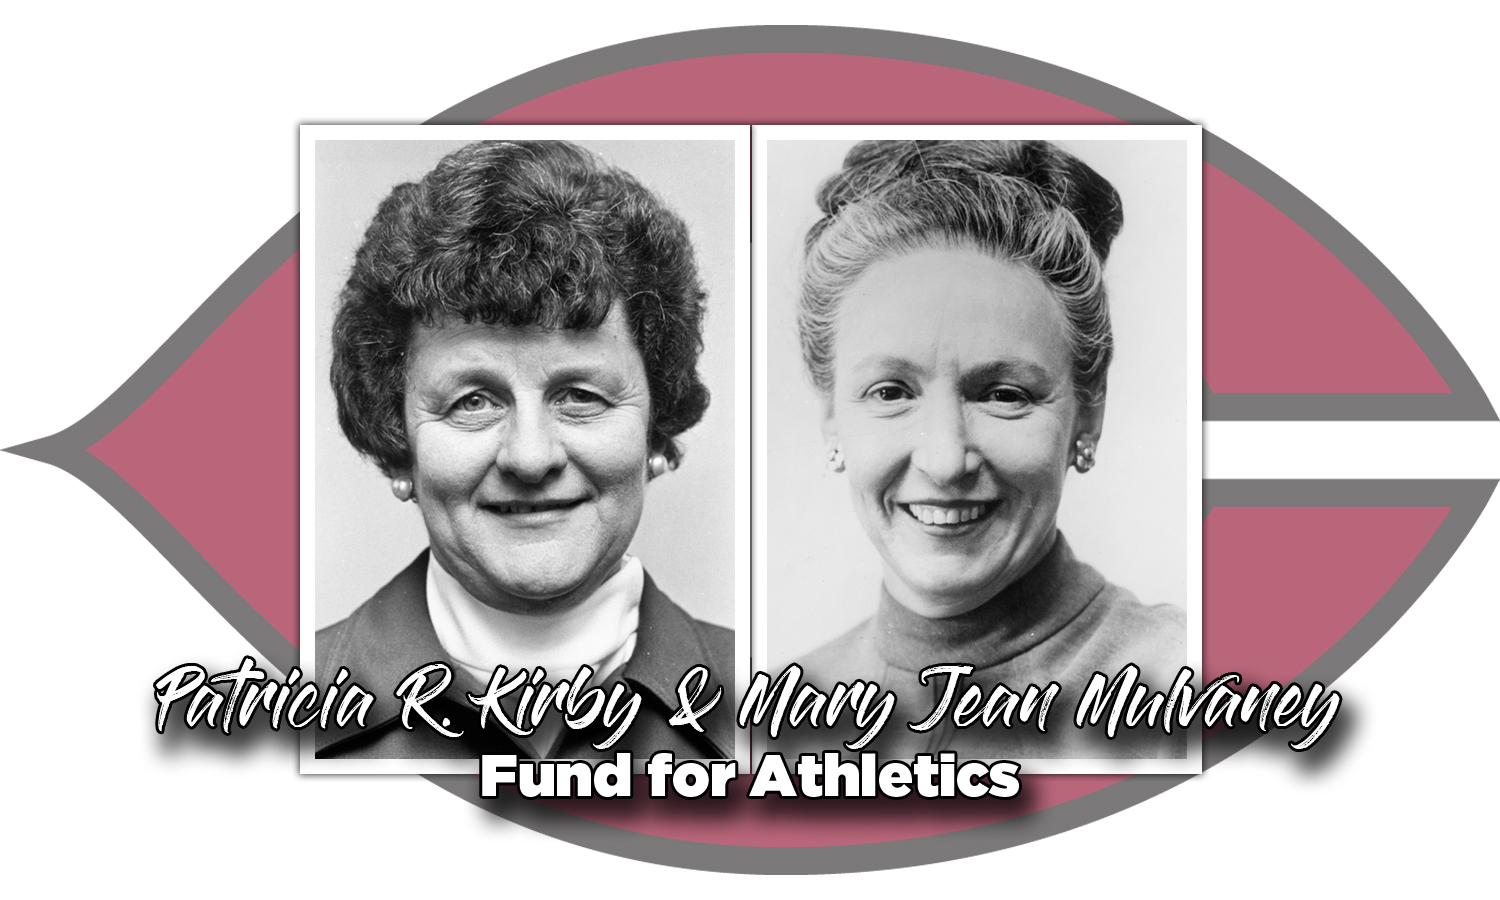 UChicago Athletics & Recreation Announces Creation of Patricia R. Kirby and Mary Jean Mulvaney Fund